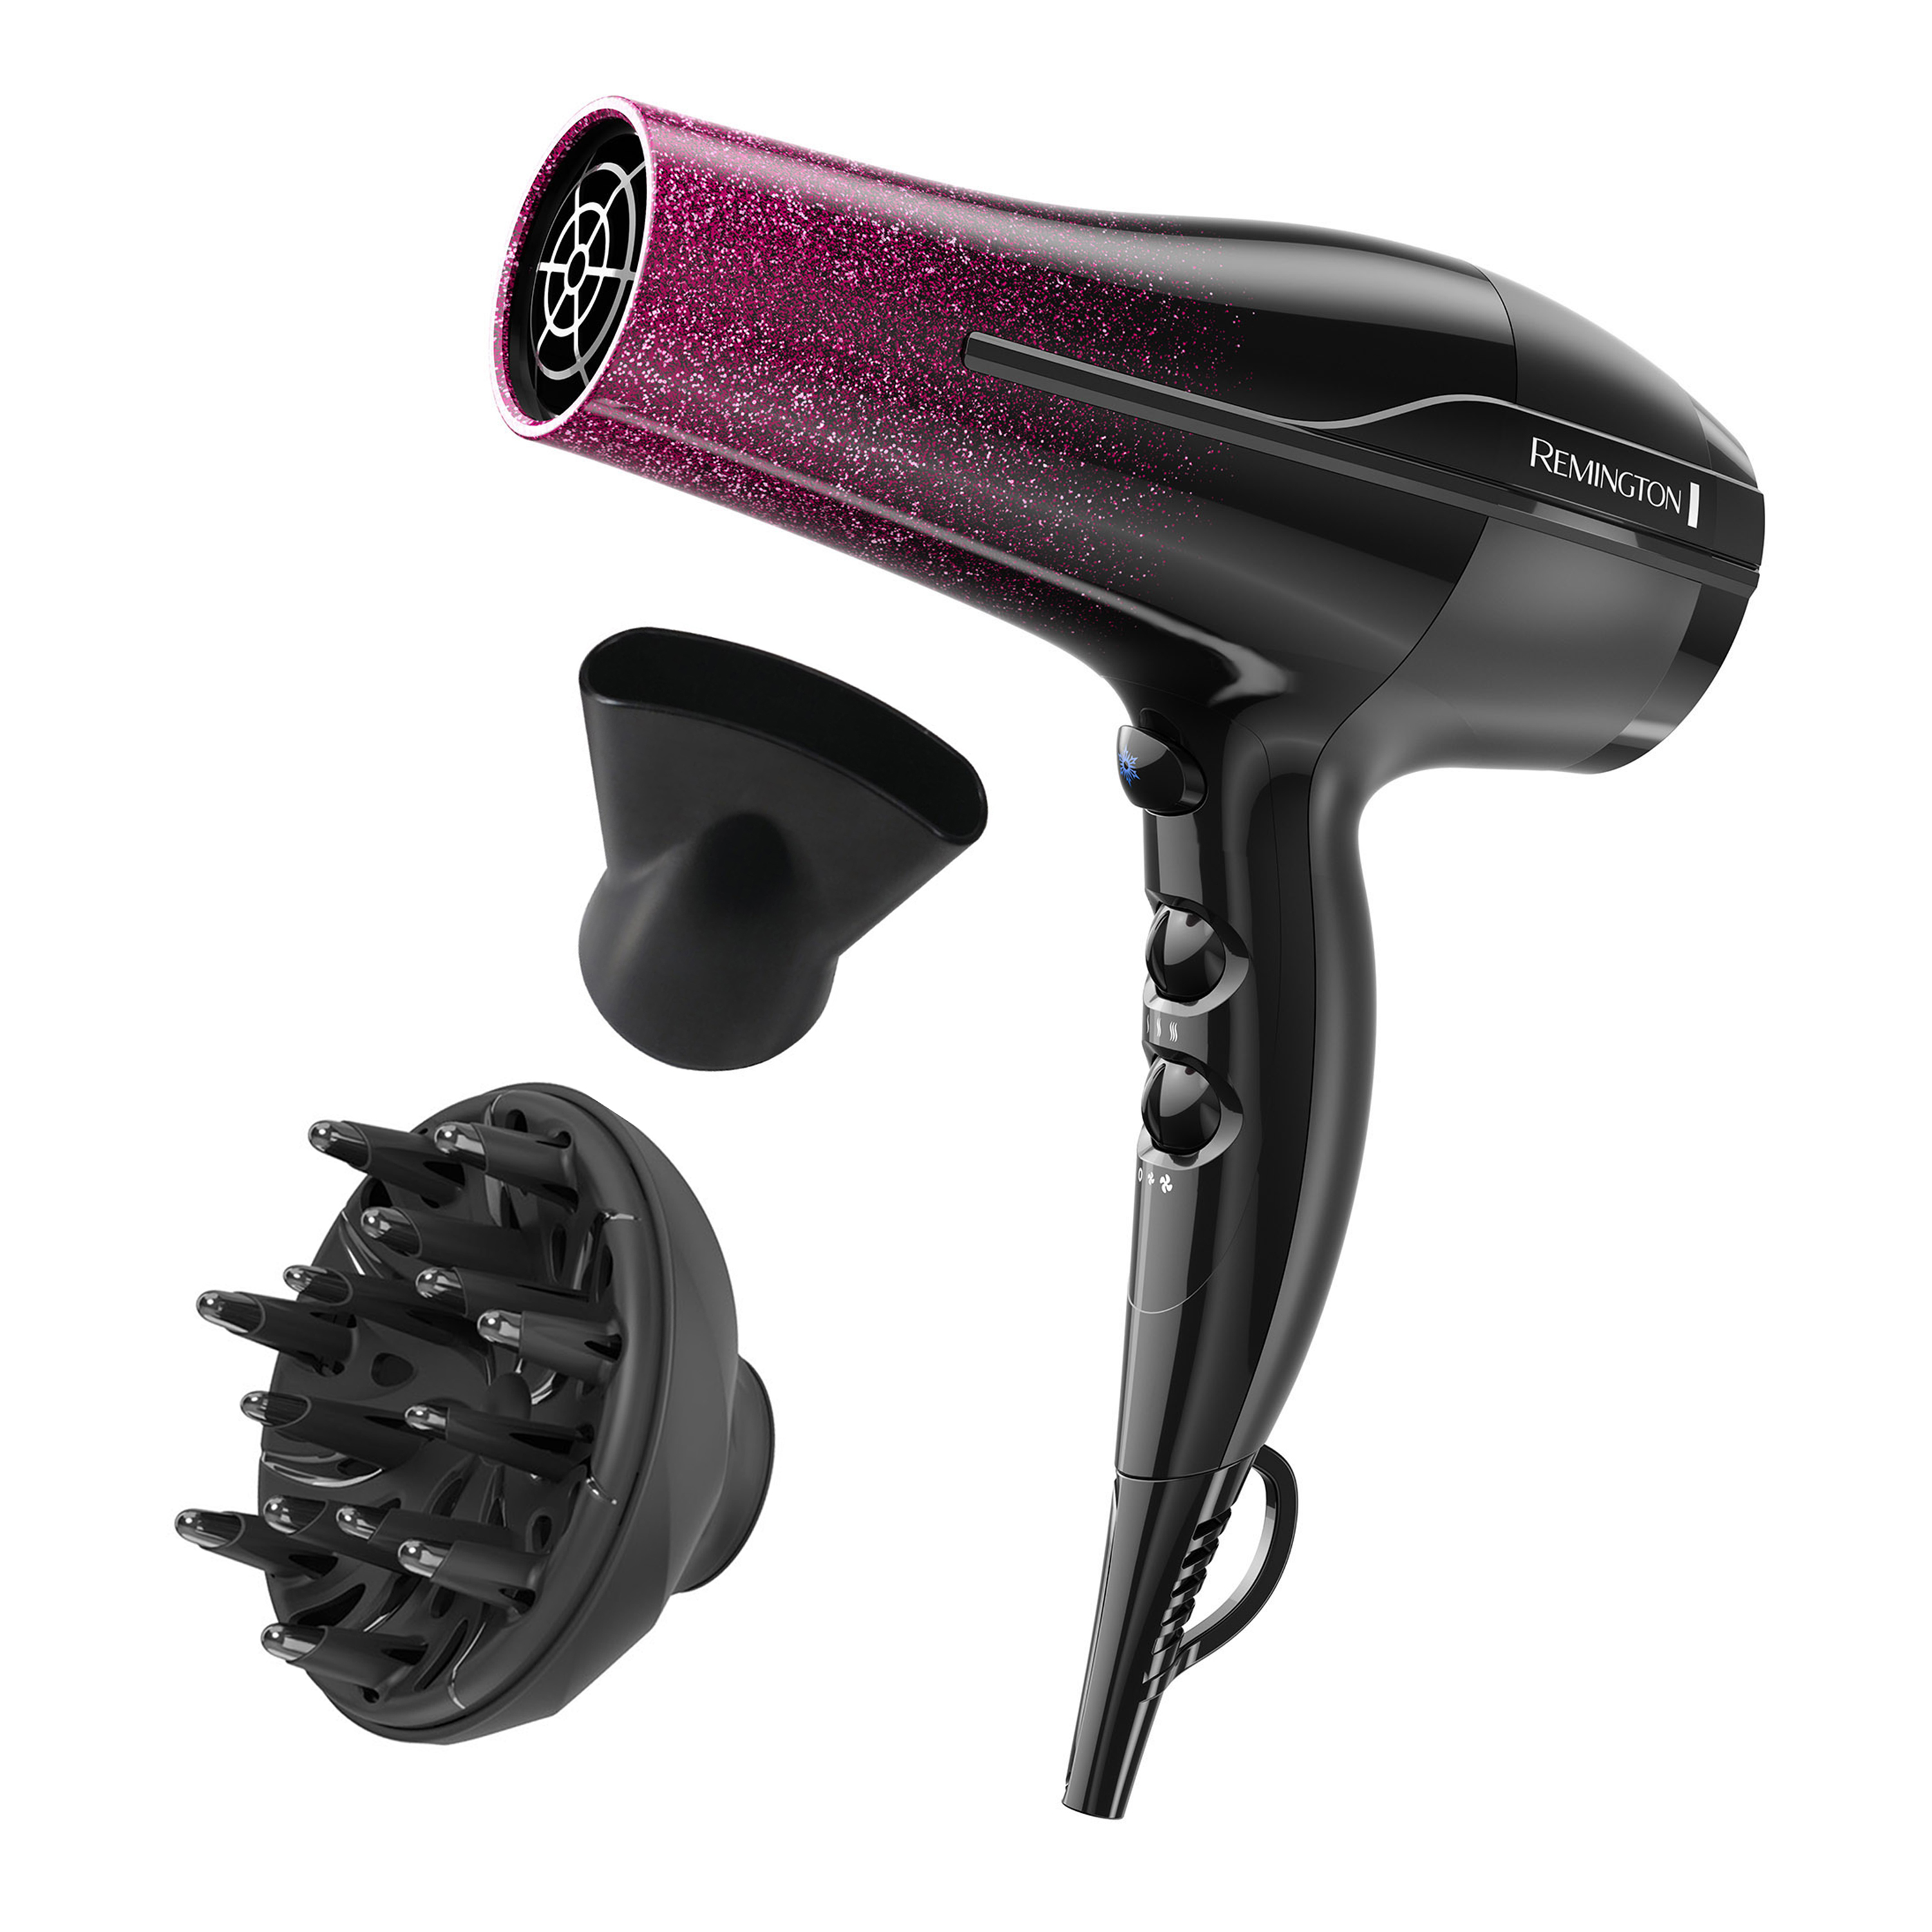 Remington Ultimate Smooth™ Hair Dryer with Titanium + Ionic + Ceramic Technology, Pink Glitter, D5950A